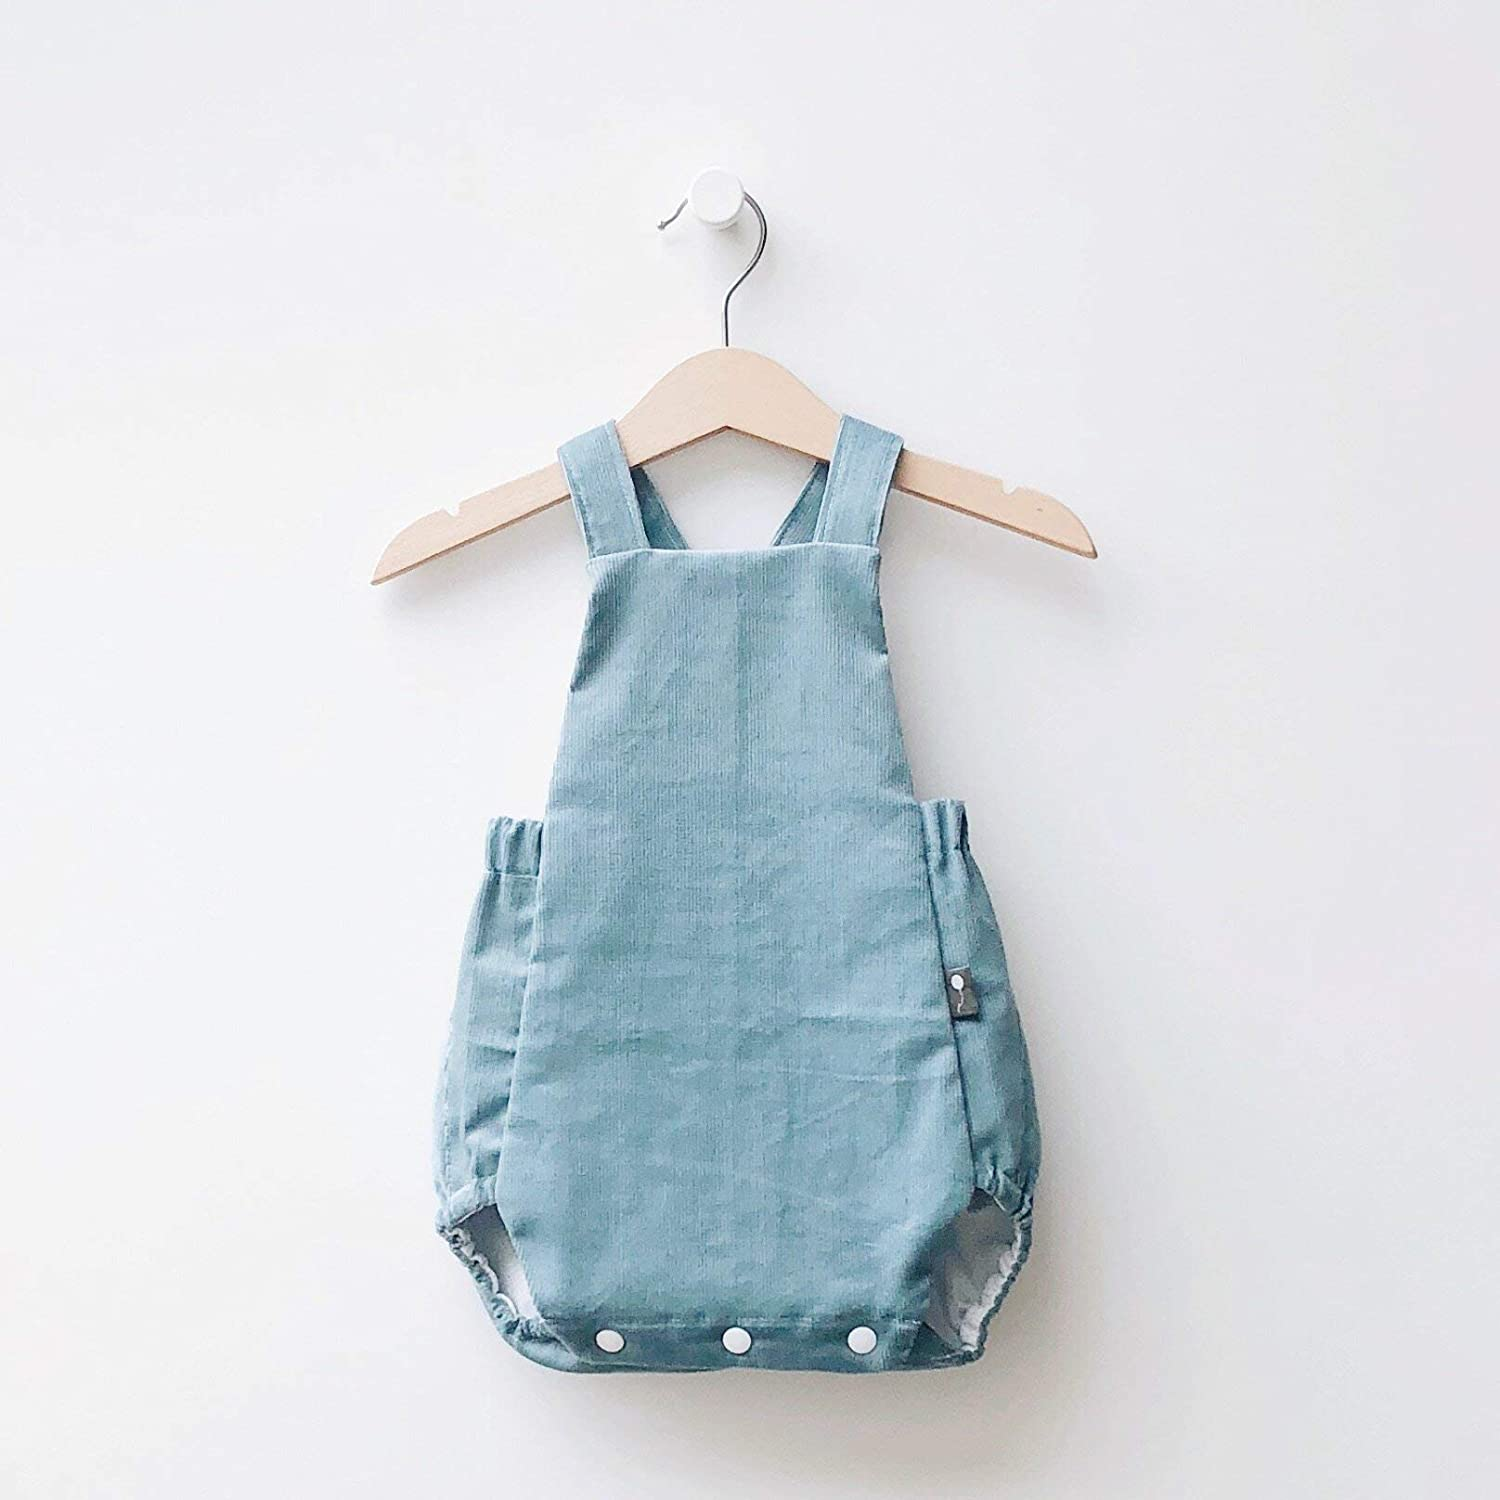 db91150b8e60 Amazon.com  Baby Classic Bubble Romper Wine Red Corduroy - Reversible from  0m to 24m  Handmade